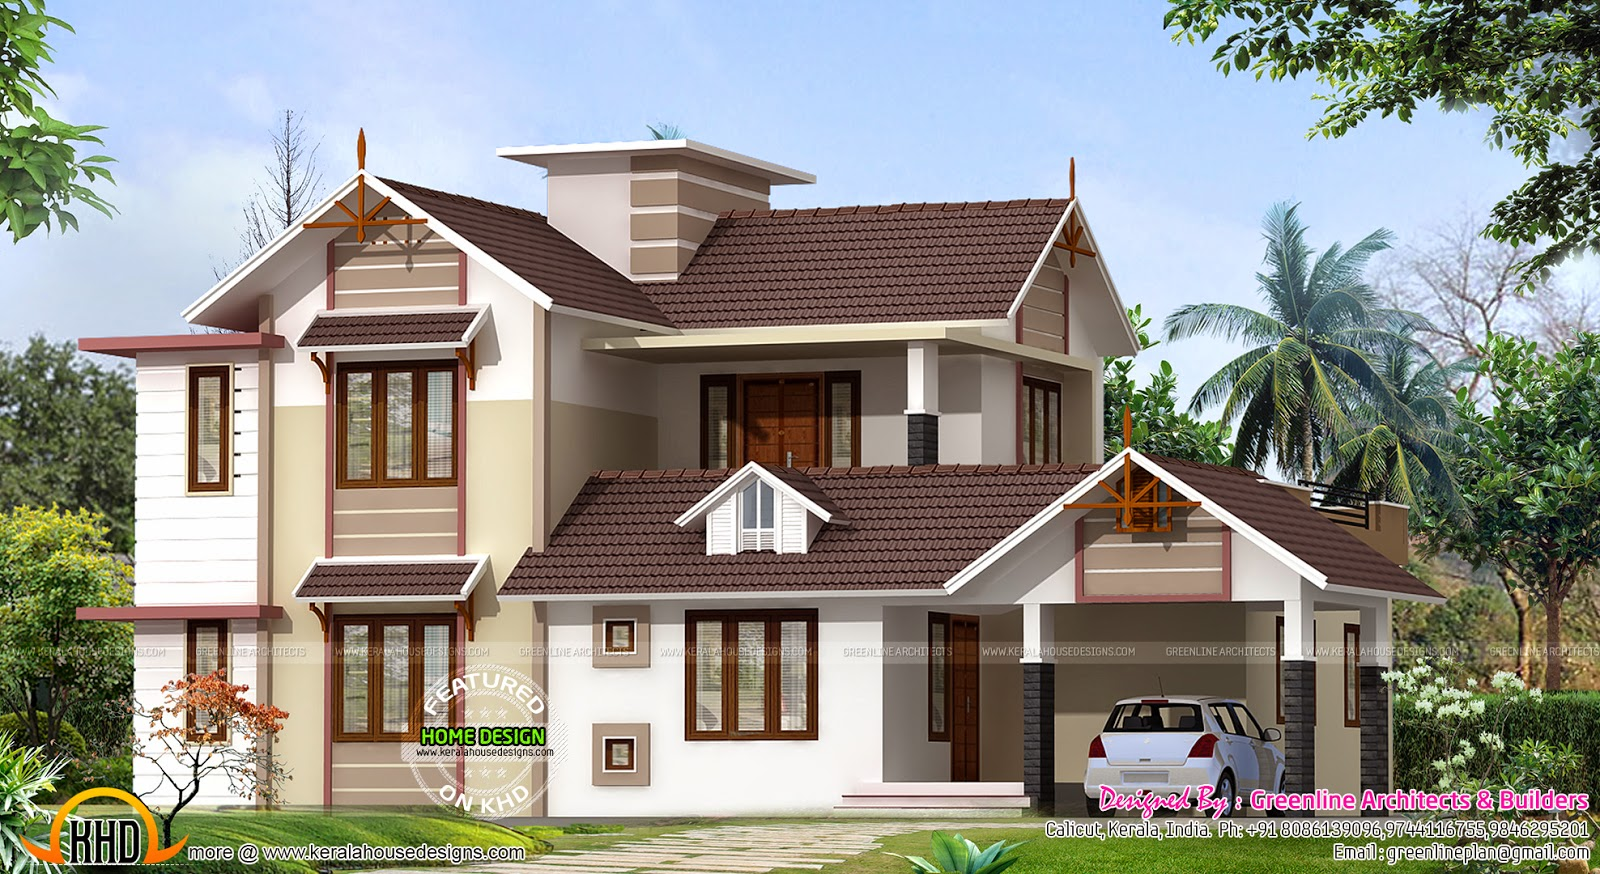 2400 sq ft new house design kerala home design and floor for Best new house designs